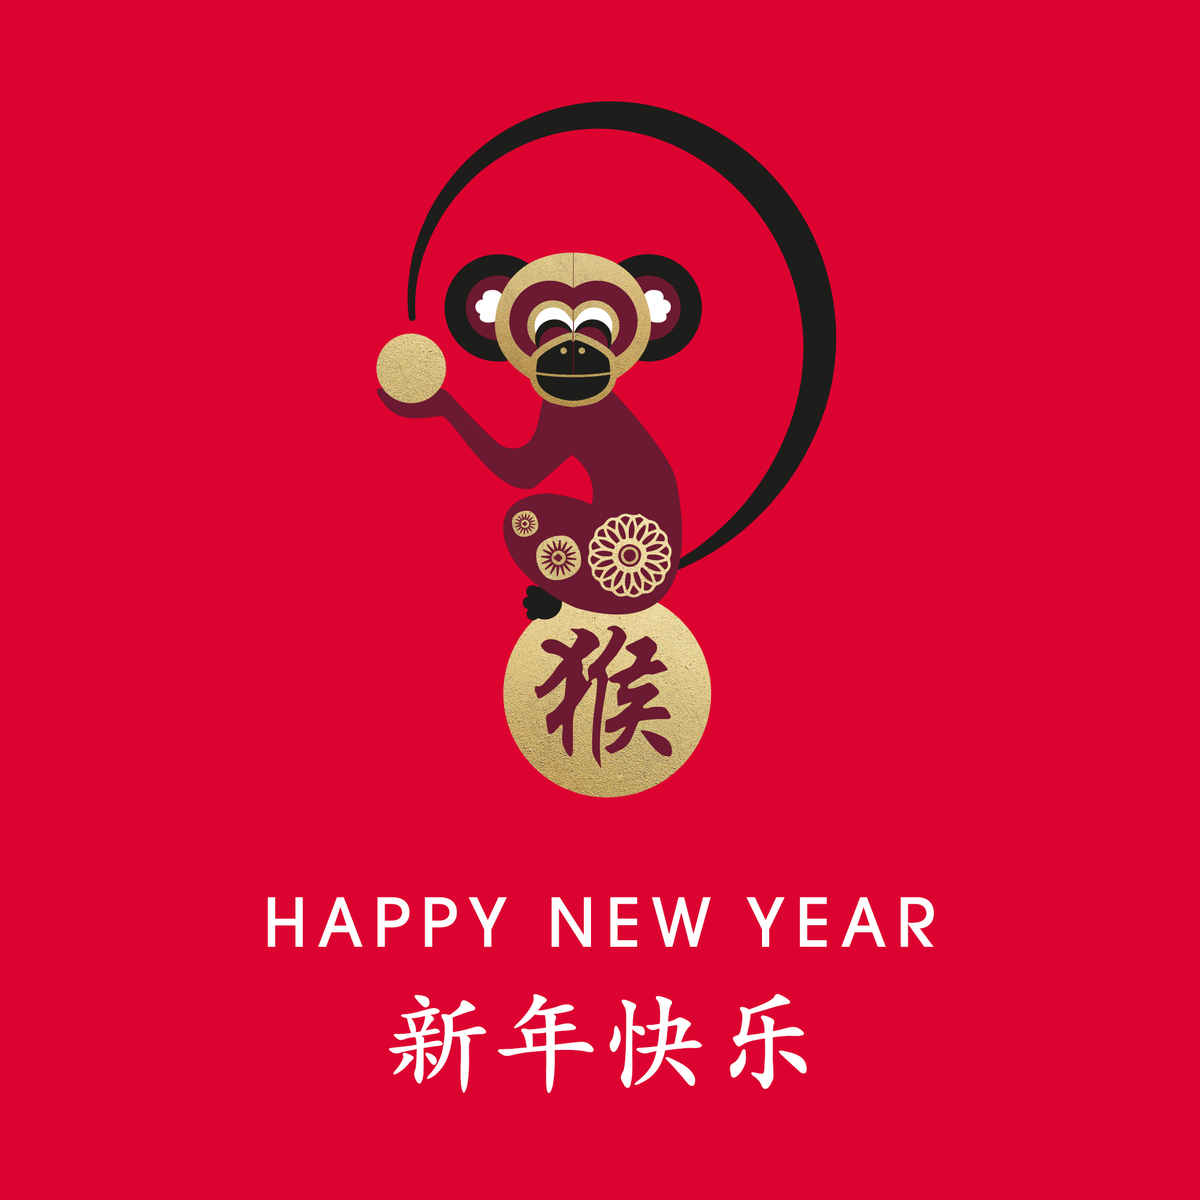 Happy Chinese New Year Wishing You Health Happiness And